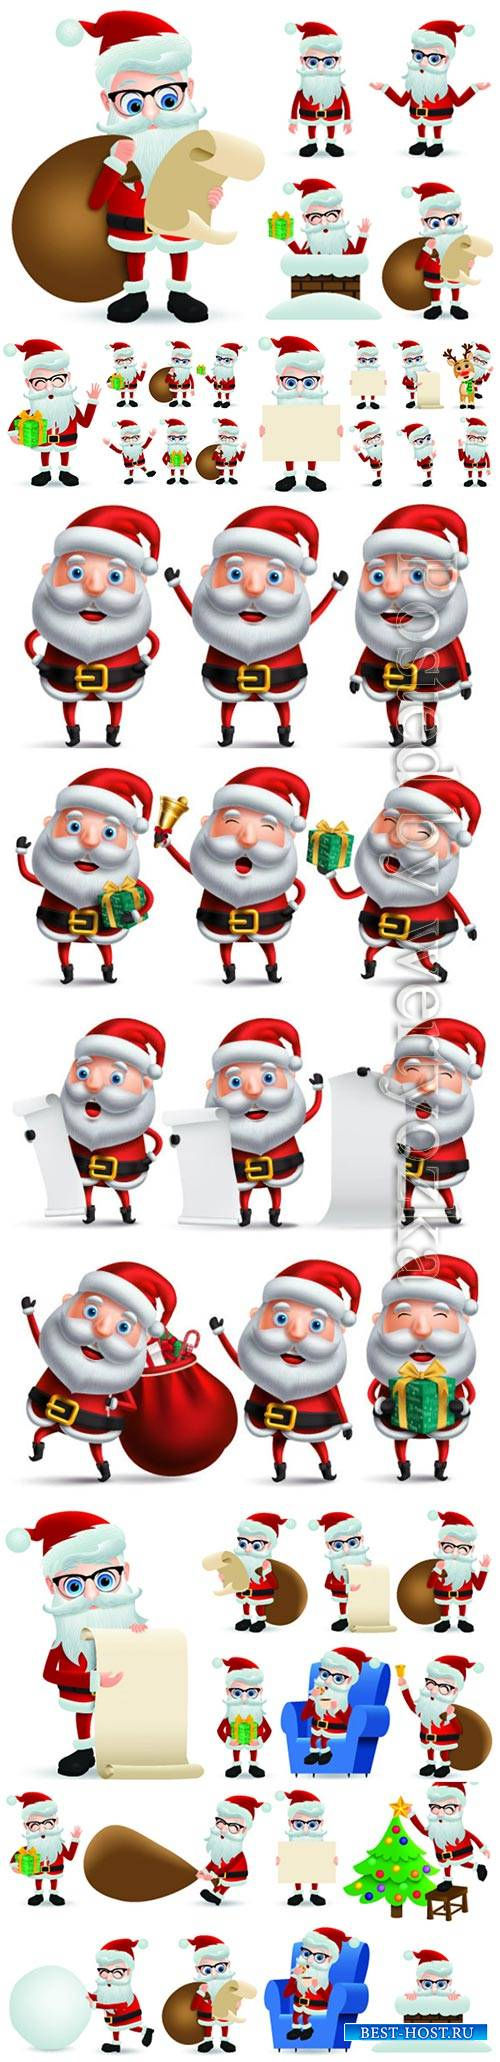 Santa claus vector character showing and holding wish list for christmas gi ...